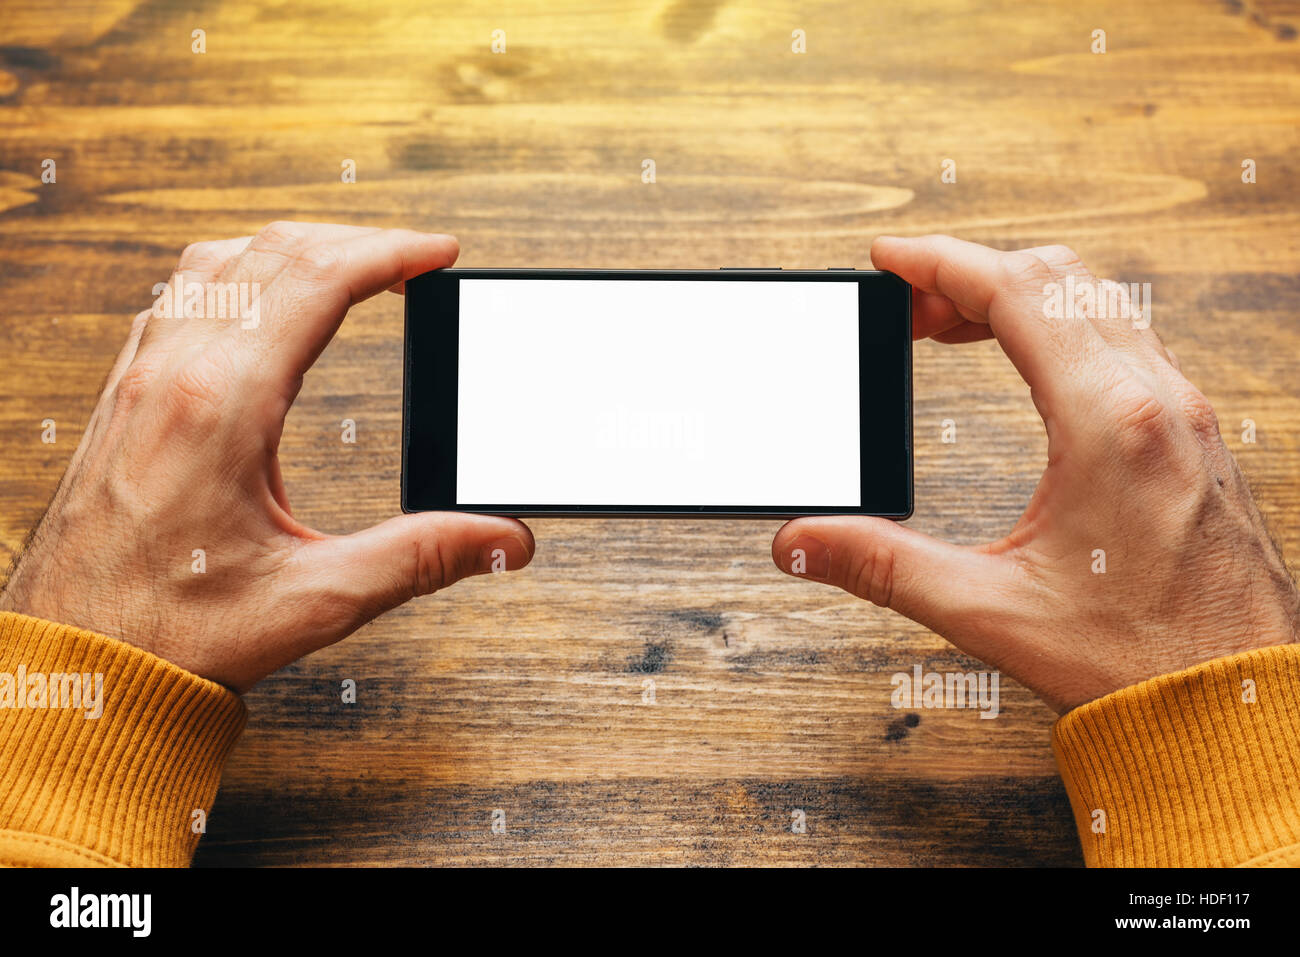 Man using smart phone in horizontal landscape orientation for streaming movies or browsing picture gallery, blank - Stock Image